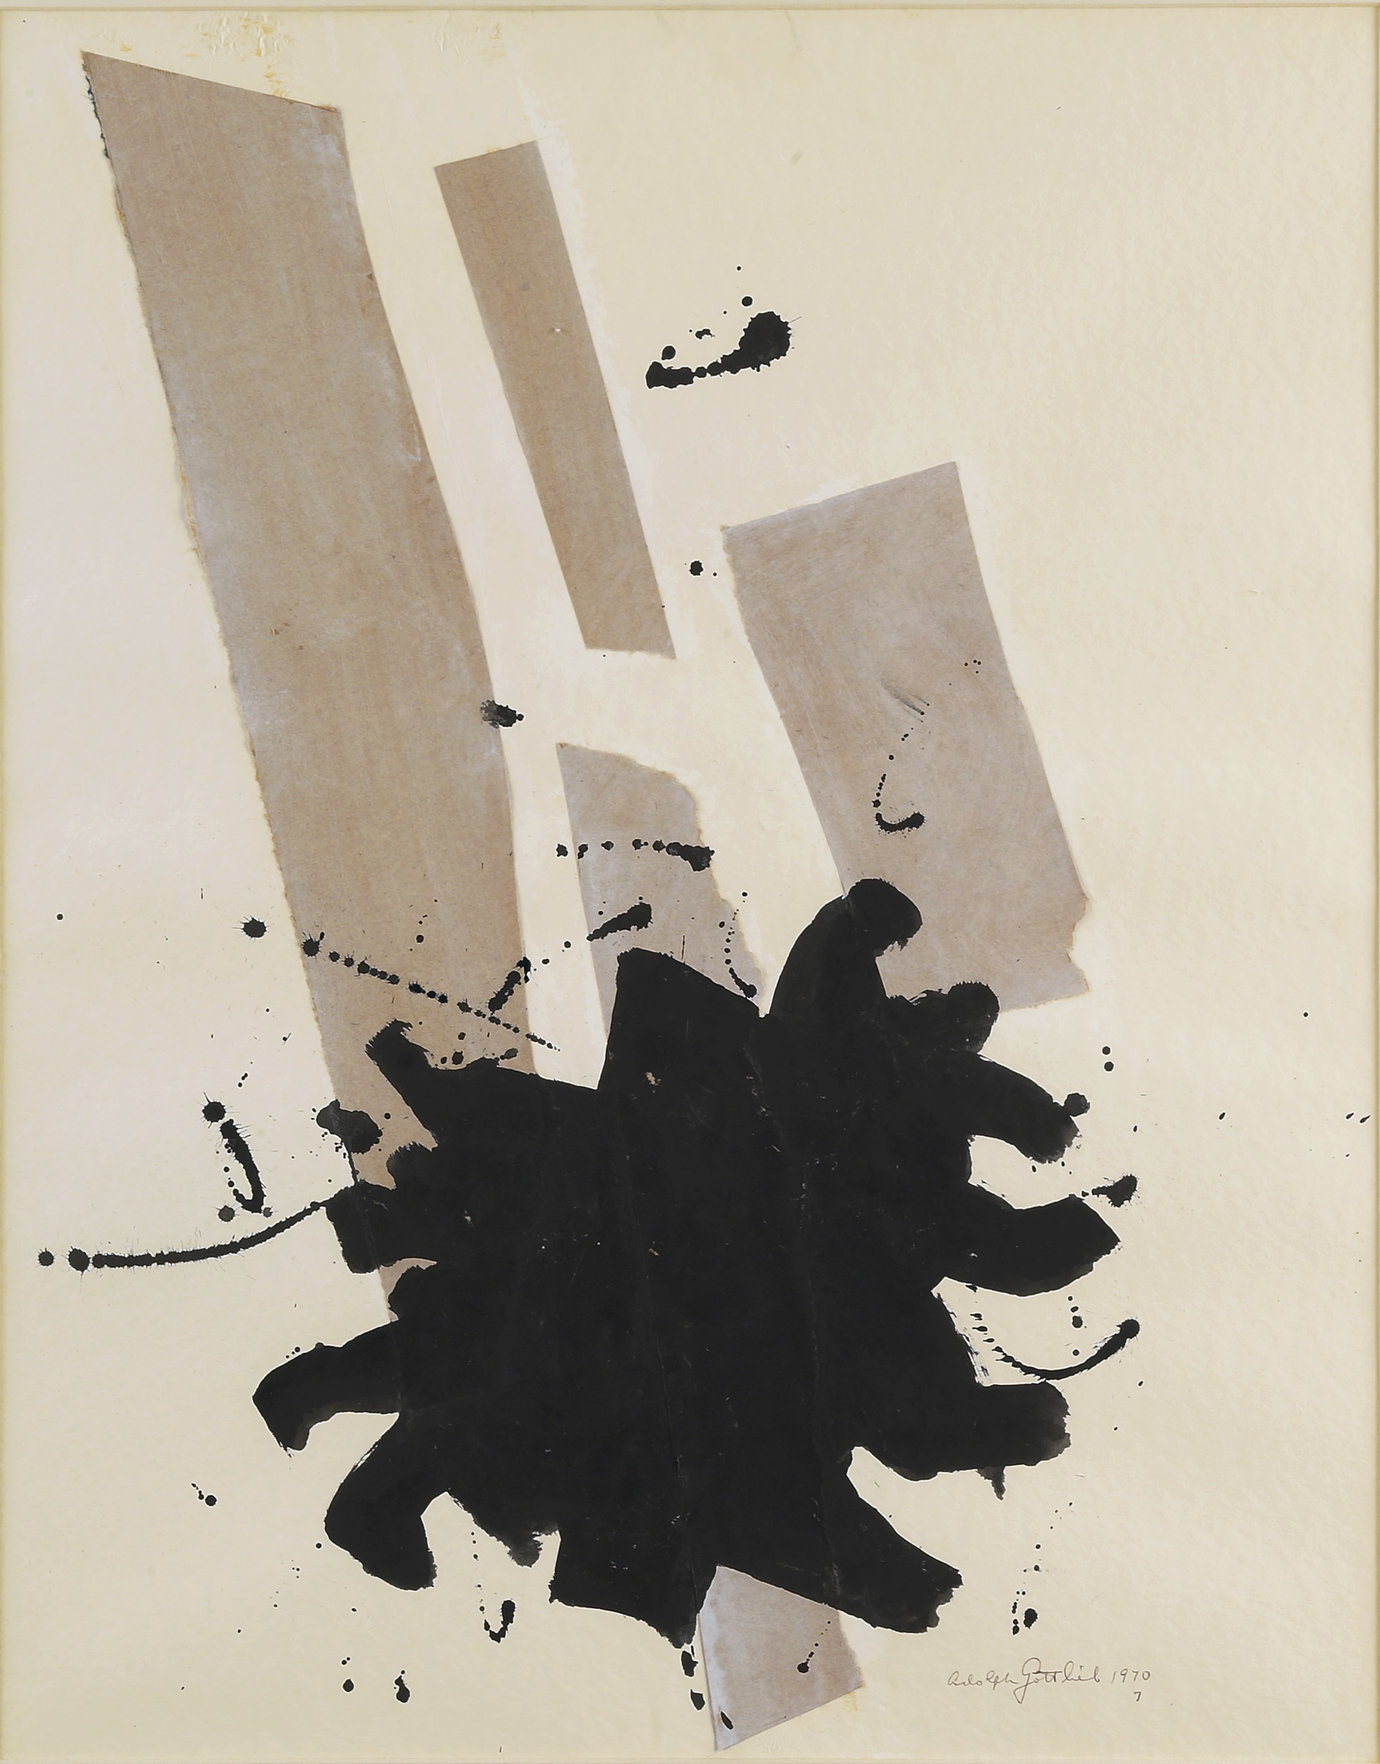 ", 1970. collage and ink on paper, 24"" x 19"" (61 cm x 48.3 cm)."